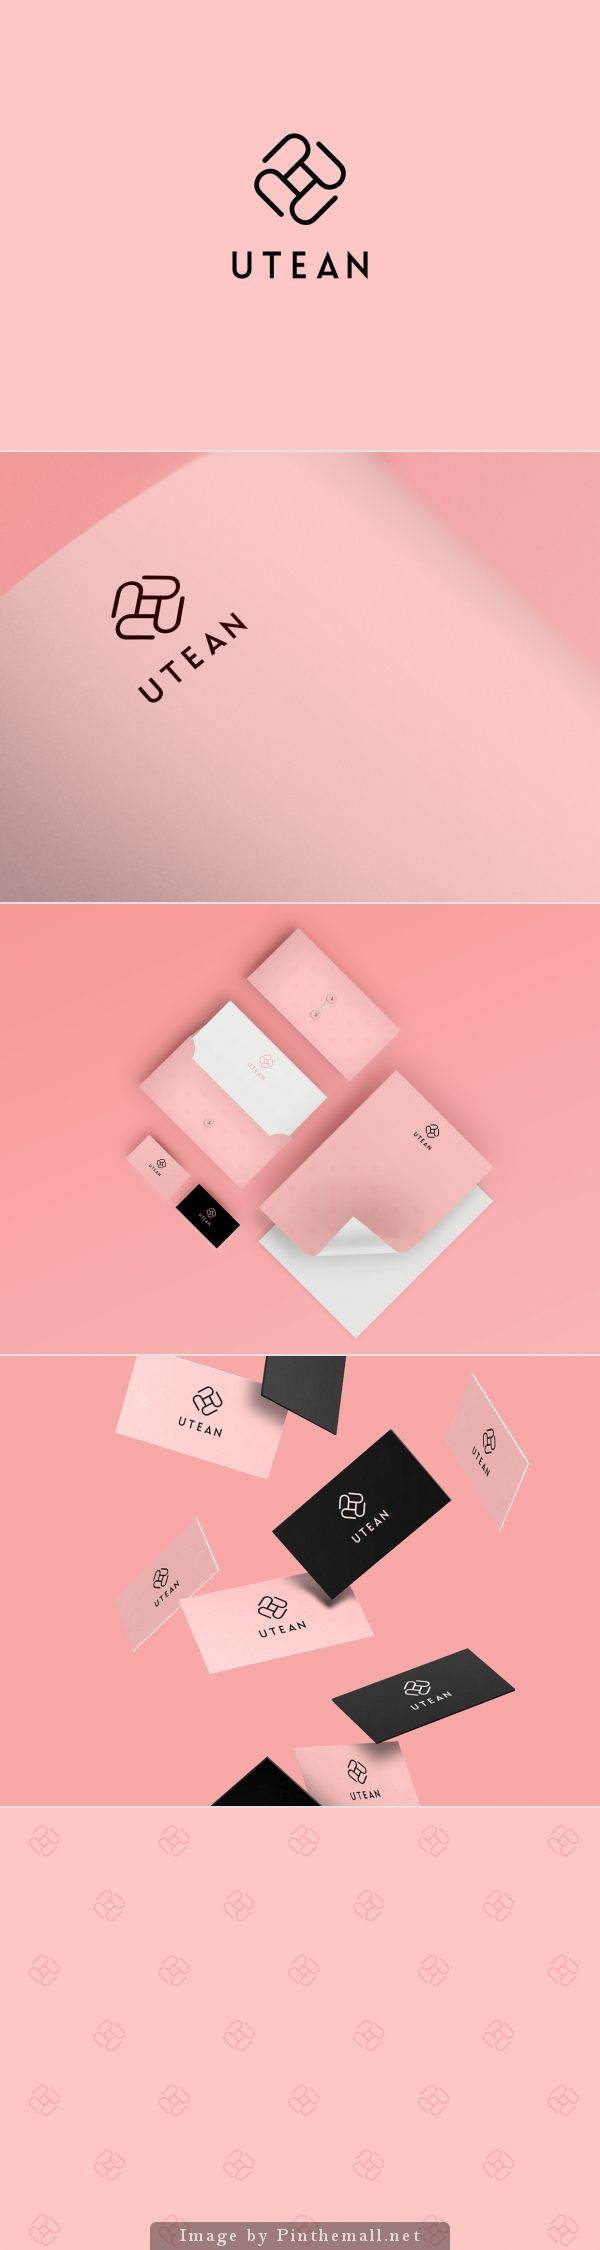 Utean by 60 degrees / brand identity